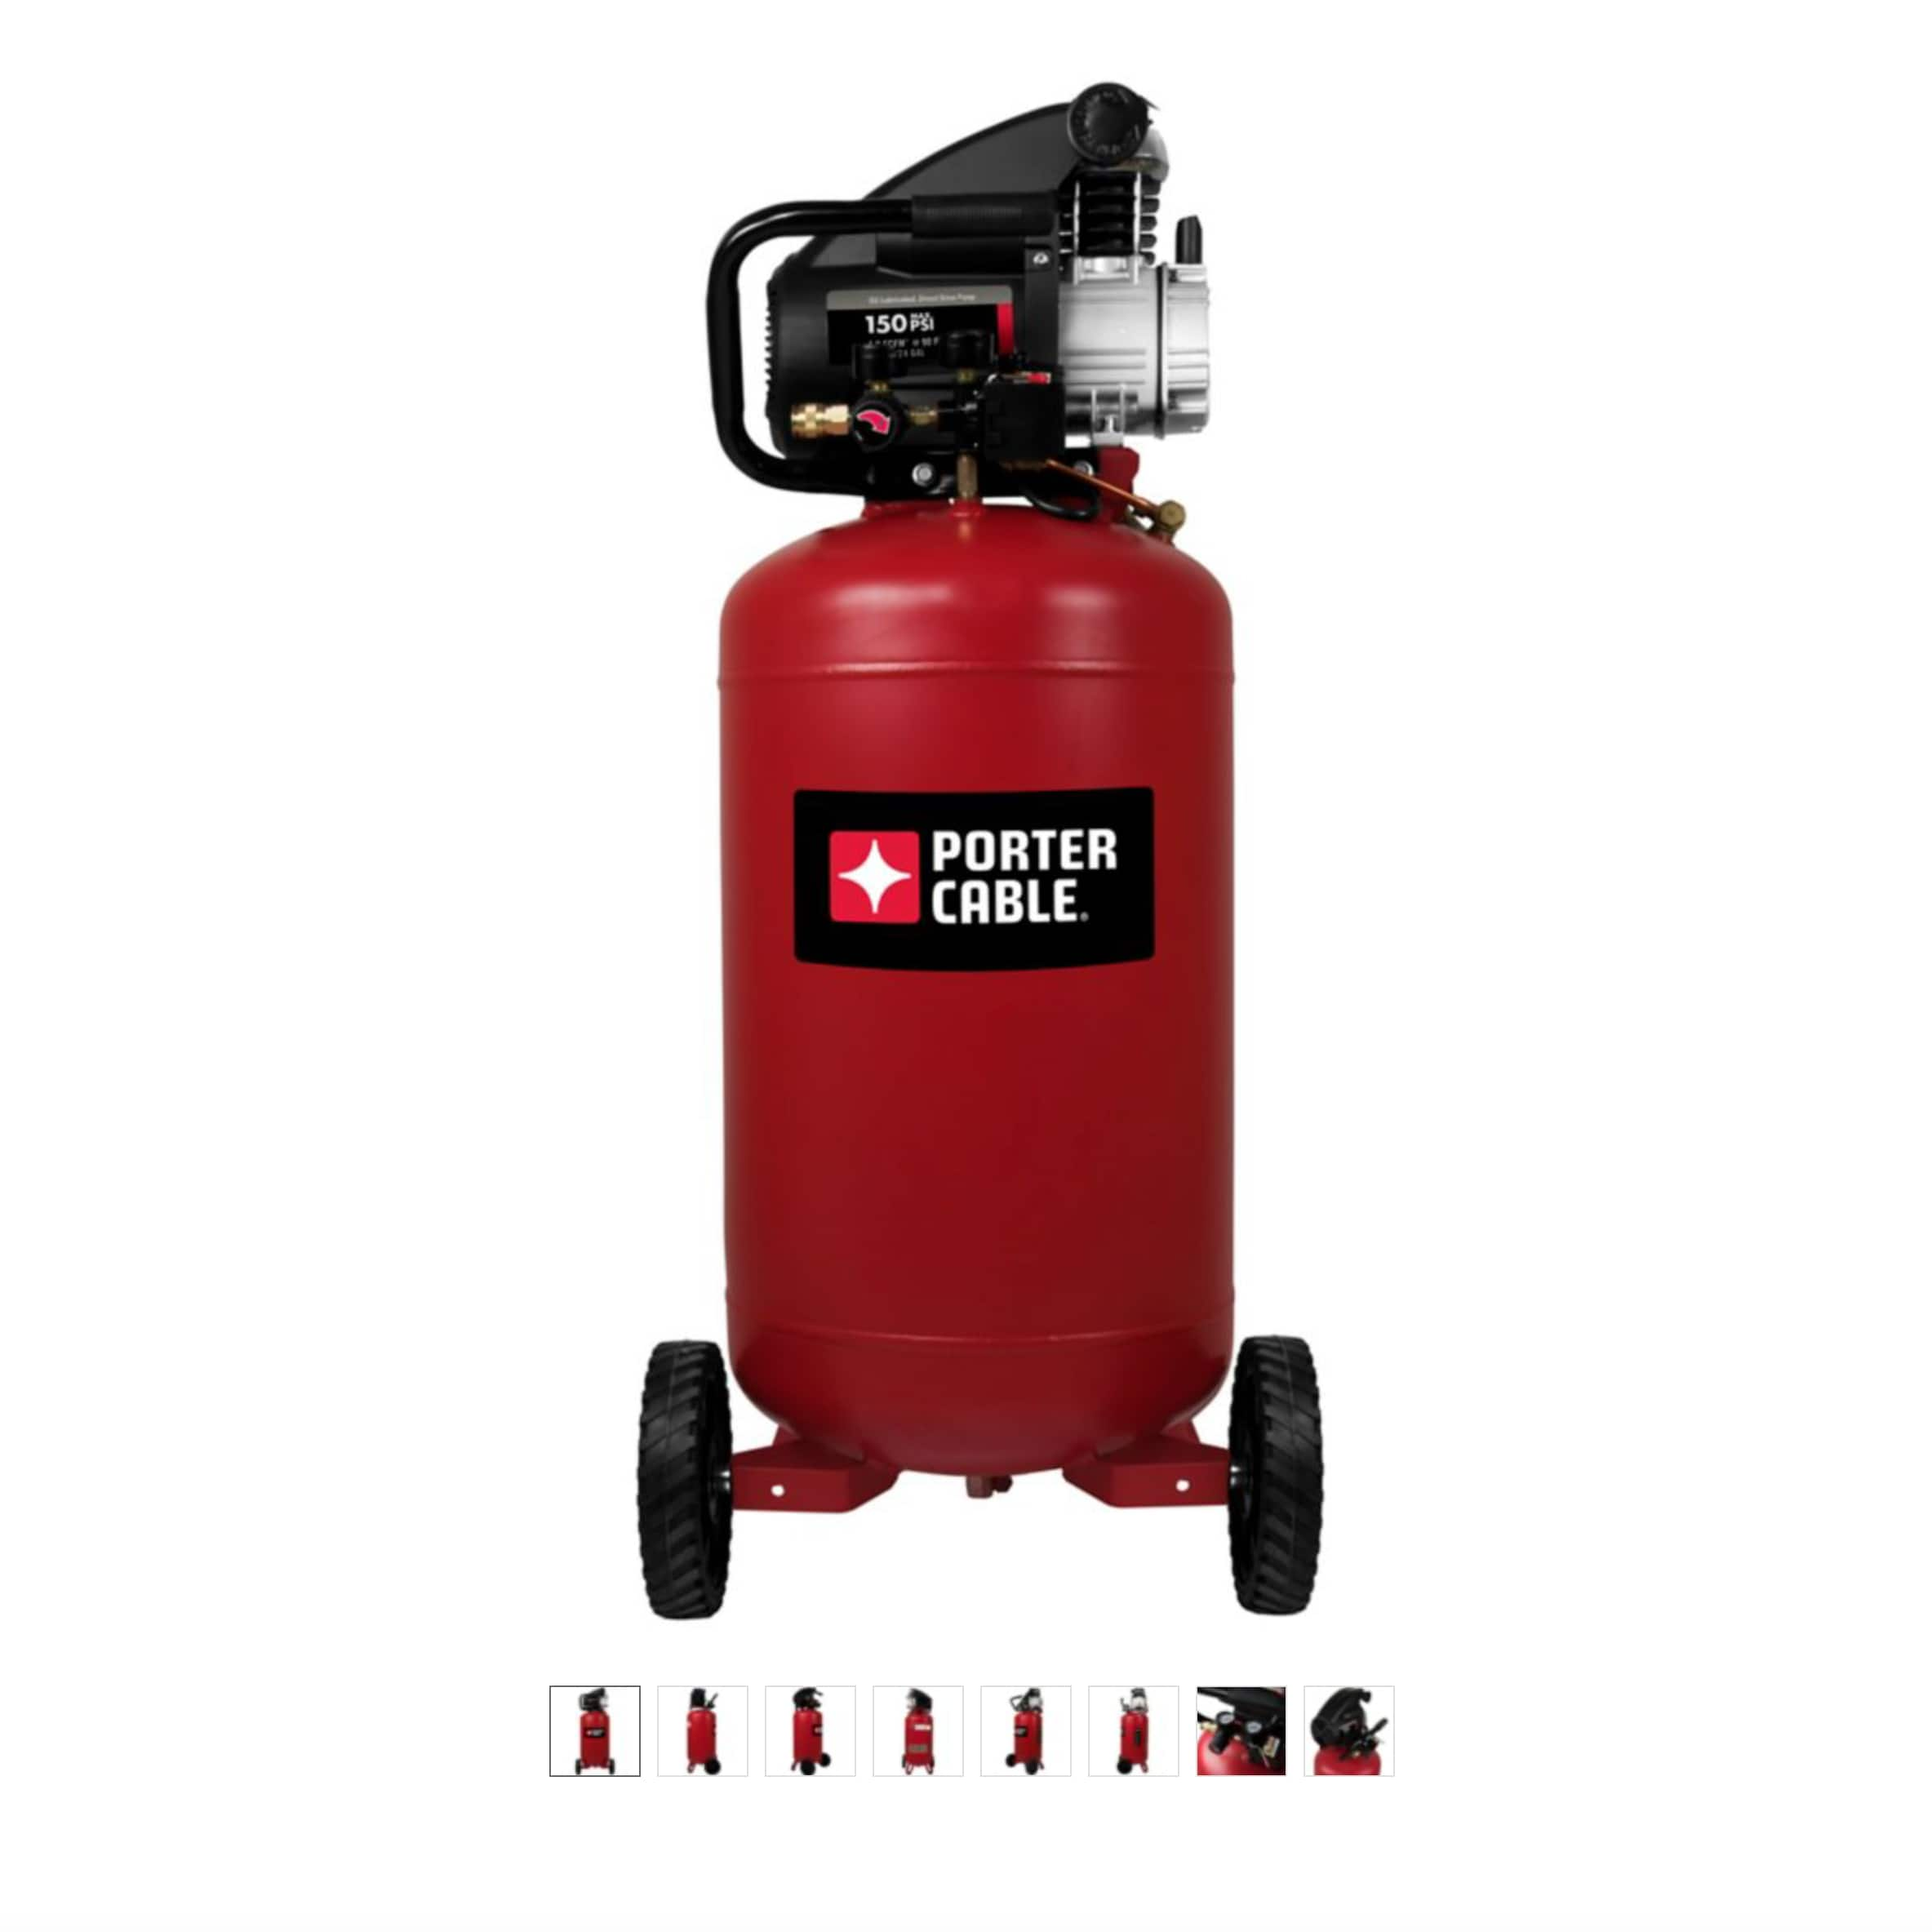 PORTER-CABLE 24-Gallon Portable Air Compressor, PXCML224VW $219.99 at Tractor Supply